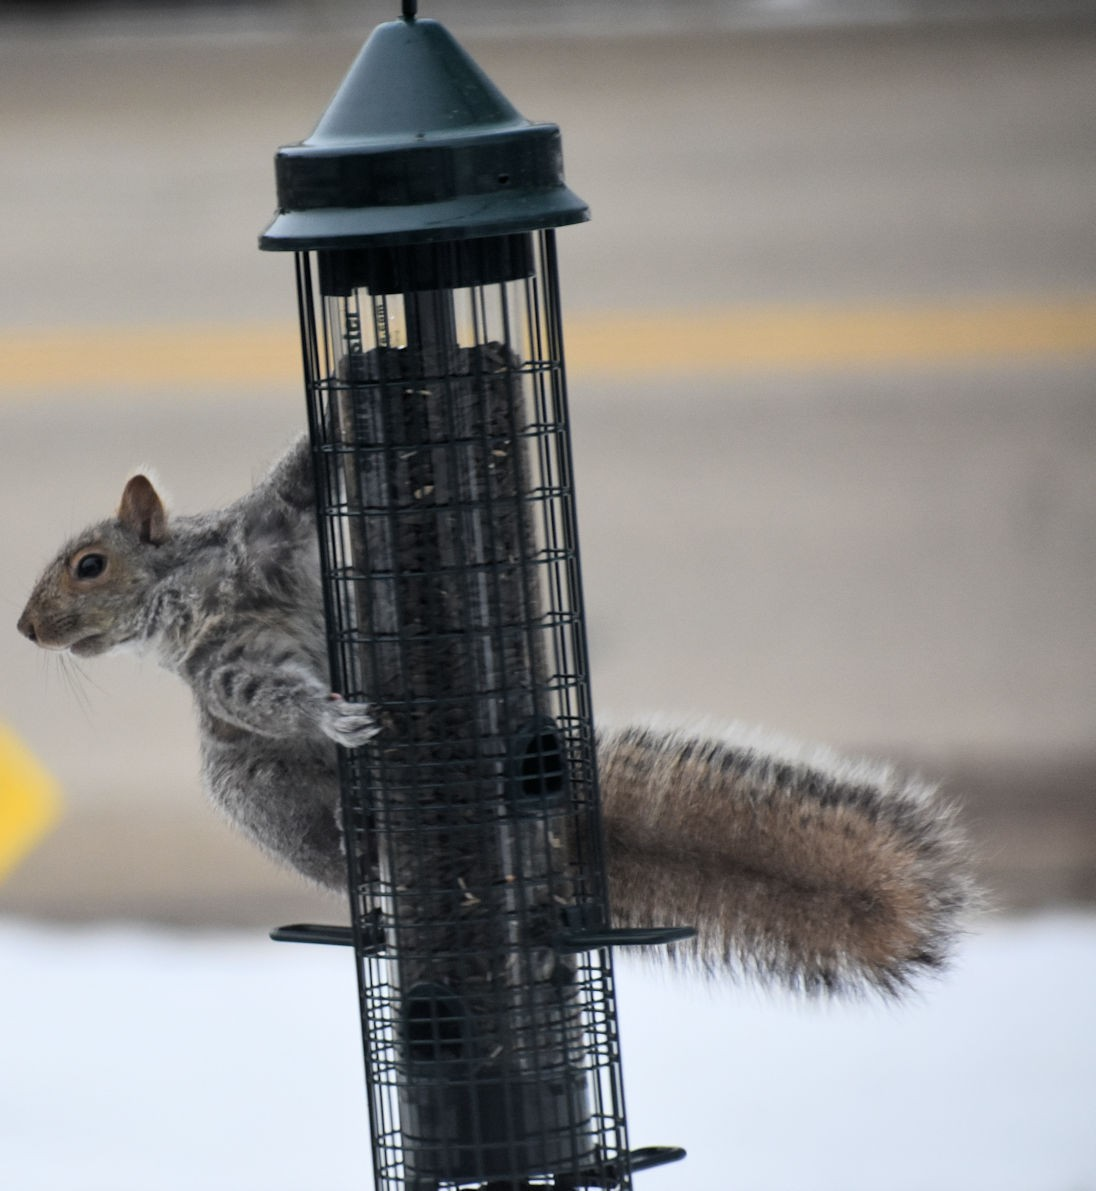 squirrel0879.jpg